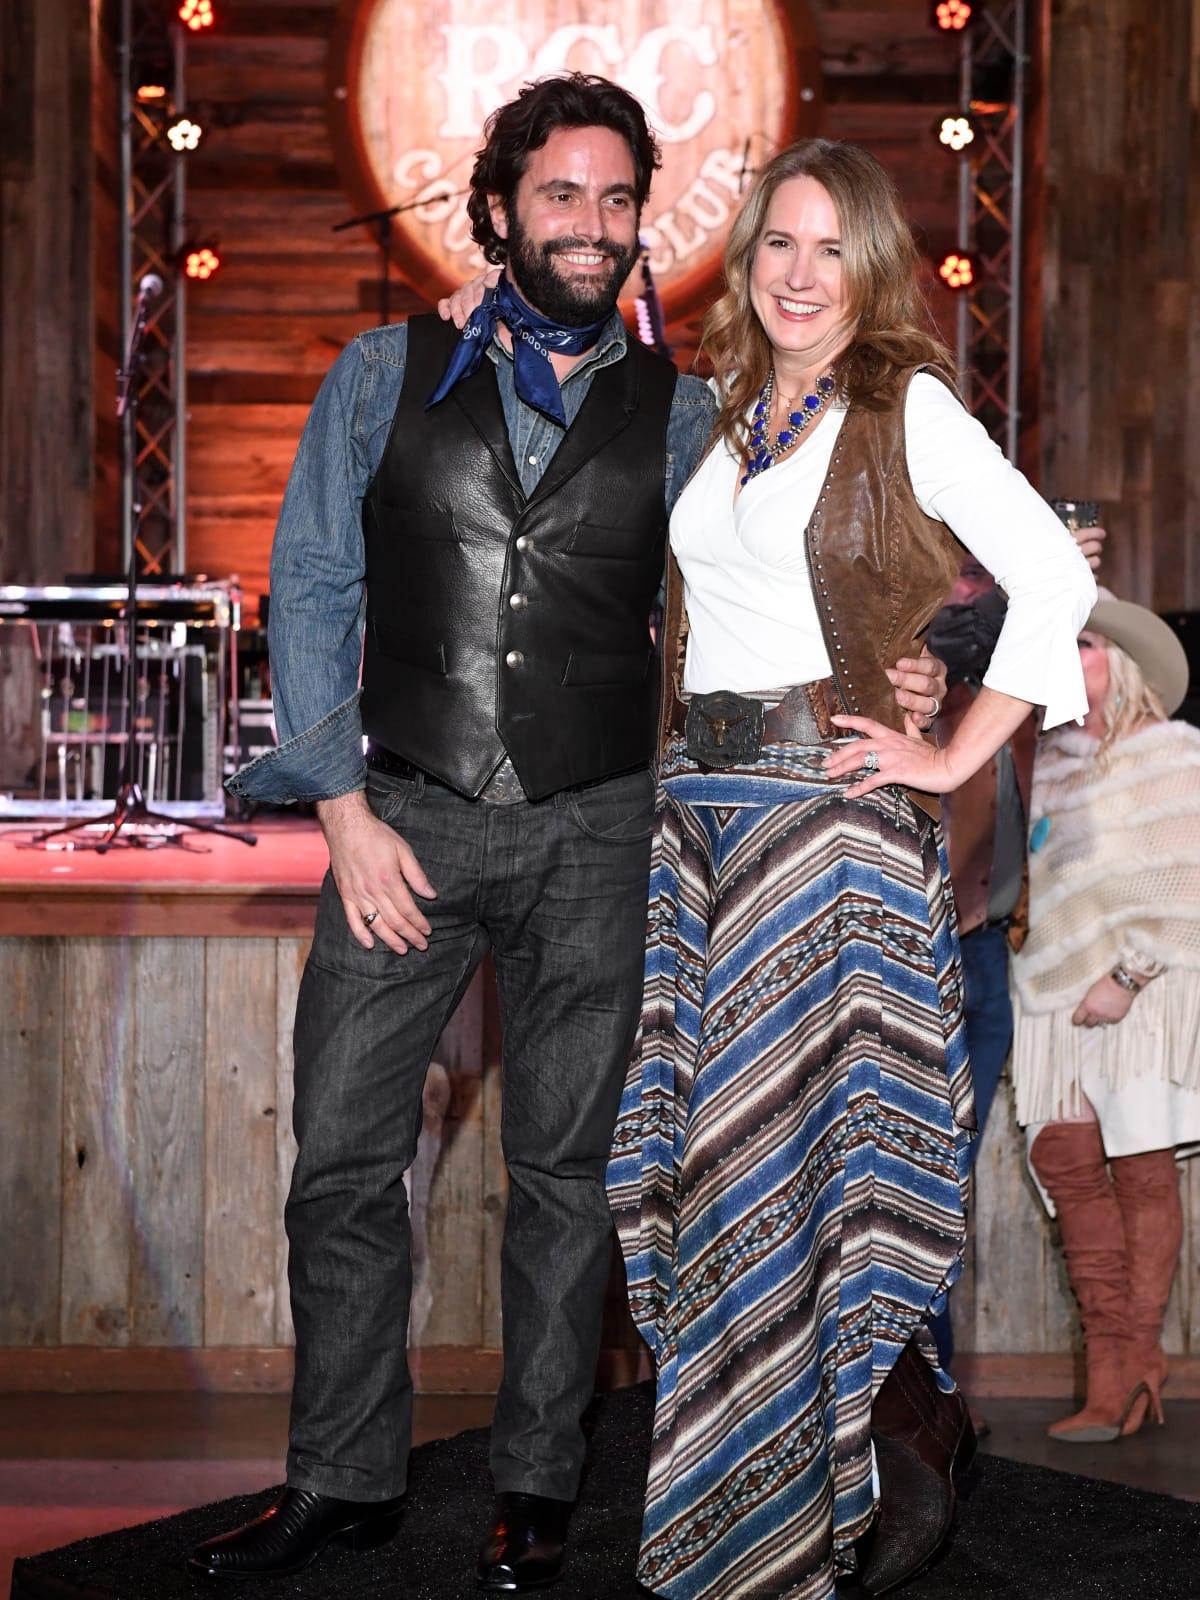 Houston, Kick Up Your Boots for Kids event, February 2018, Sam Governale, Tina Governale